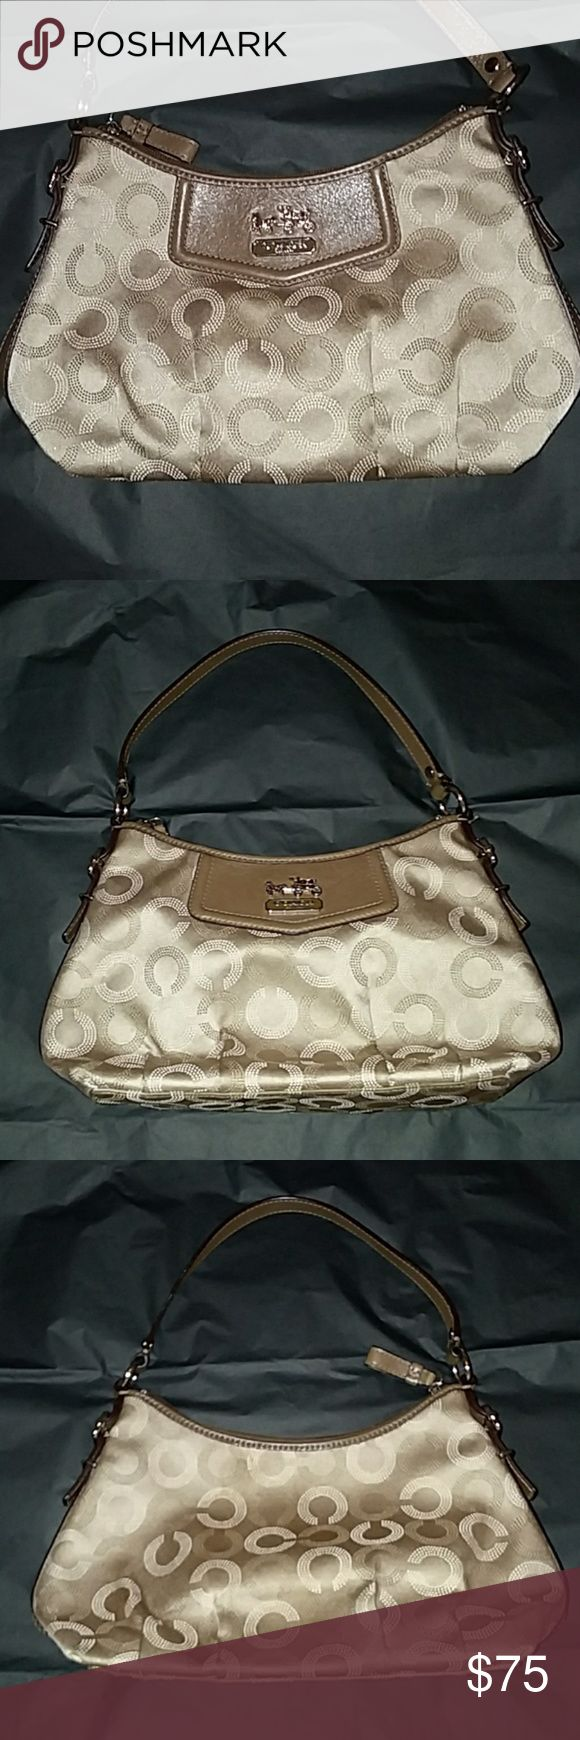 """Coach Madison Dotted Op Art Purse, Small Very cute Coach bag, perfect for a night out or for your teen!  Signature Cs in the Op Art Style. Taupe or tan colored purse with brown leather accents and strap.  Very good used condition, little or no strap wear, clean interior, minor stains on the bottom, the front and the back. Not very noticeable due to the color of the bag.  Measurements: 7"""" strap drop, 8.5"""" long at the bottom, 7"""" opening at the top, 3"""" deep, 6.5"""" tall at the shortest point…"""